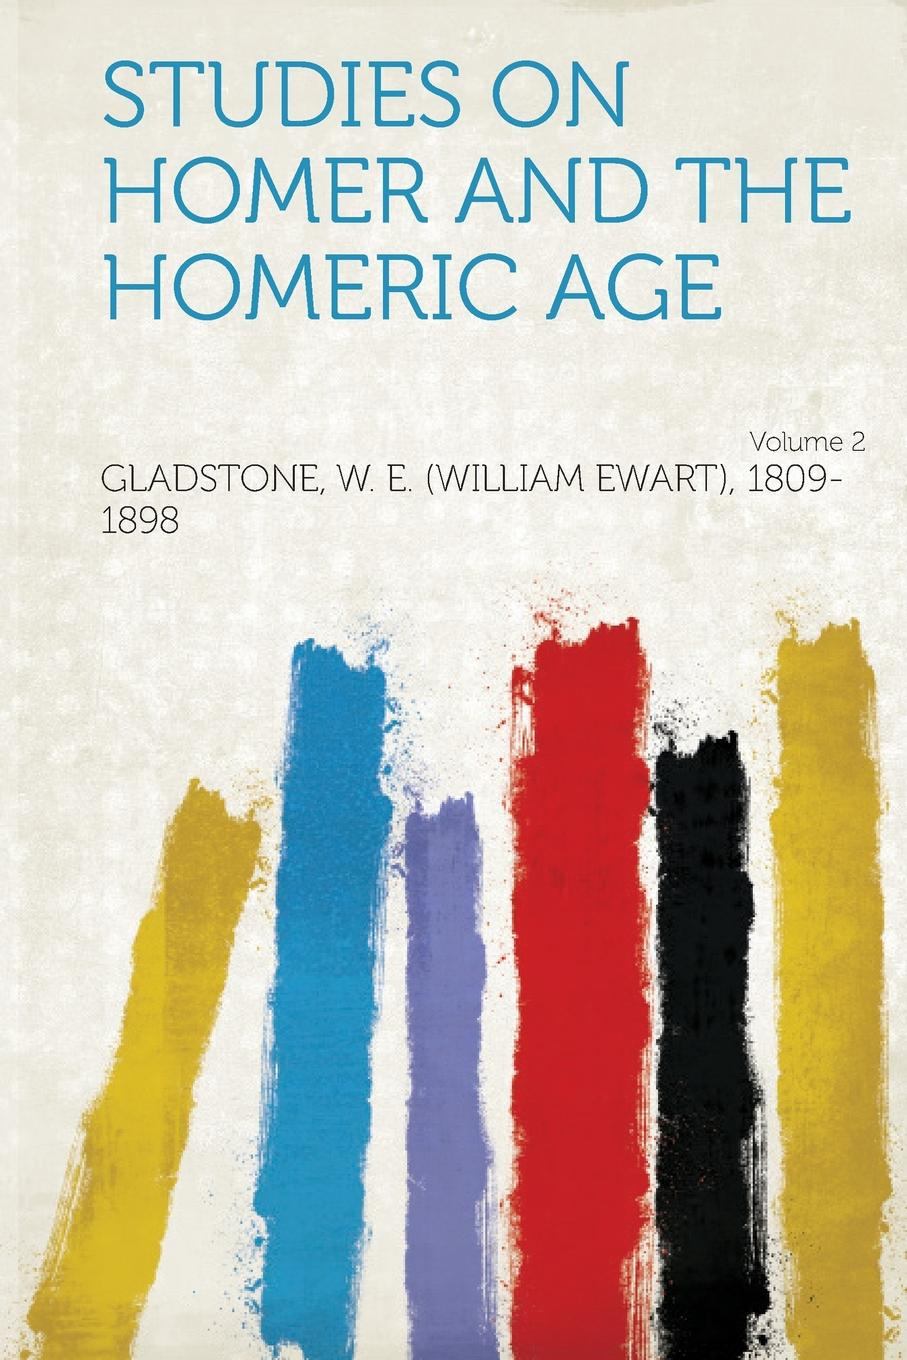 Gladstone W. E. (William Ewa 1809-1898 Studies on Homer and the Homeric Age Volume 2 gladstone william ewart studies on homer and the homeric age vol 3 of 3